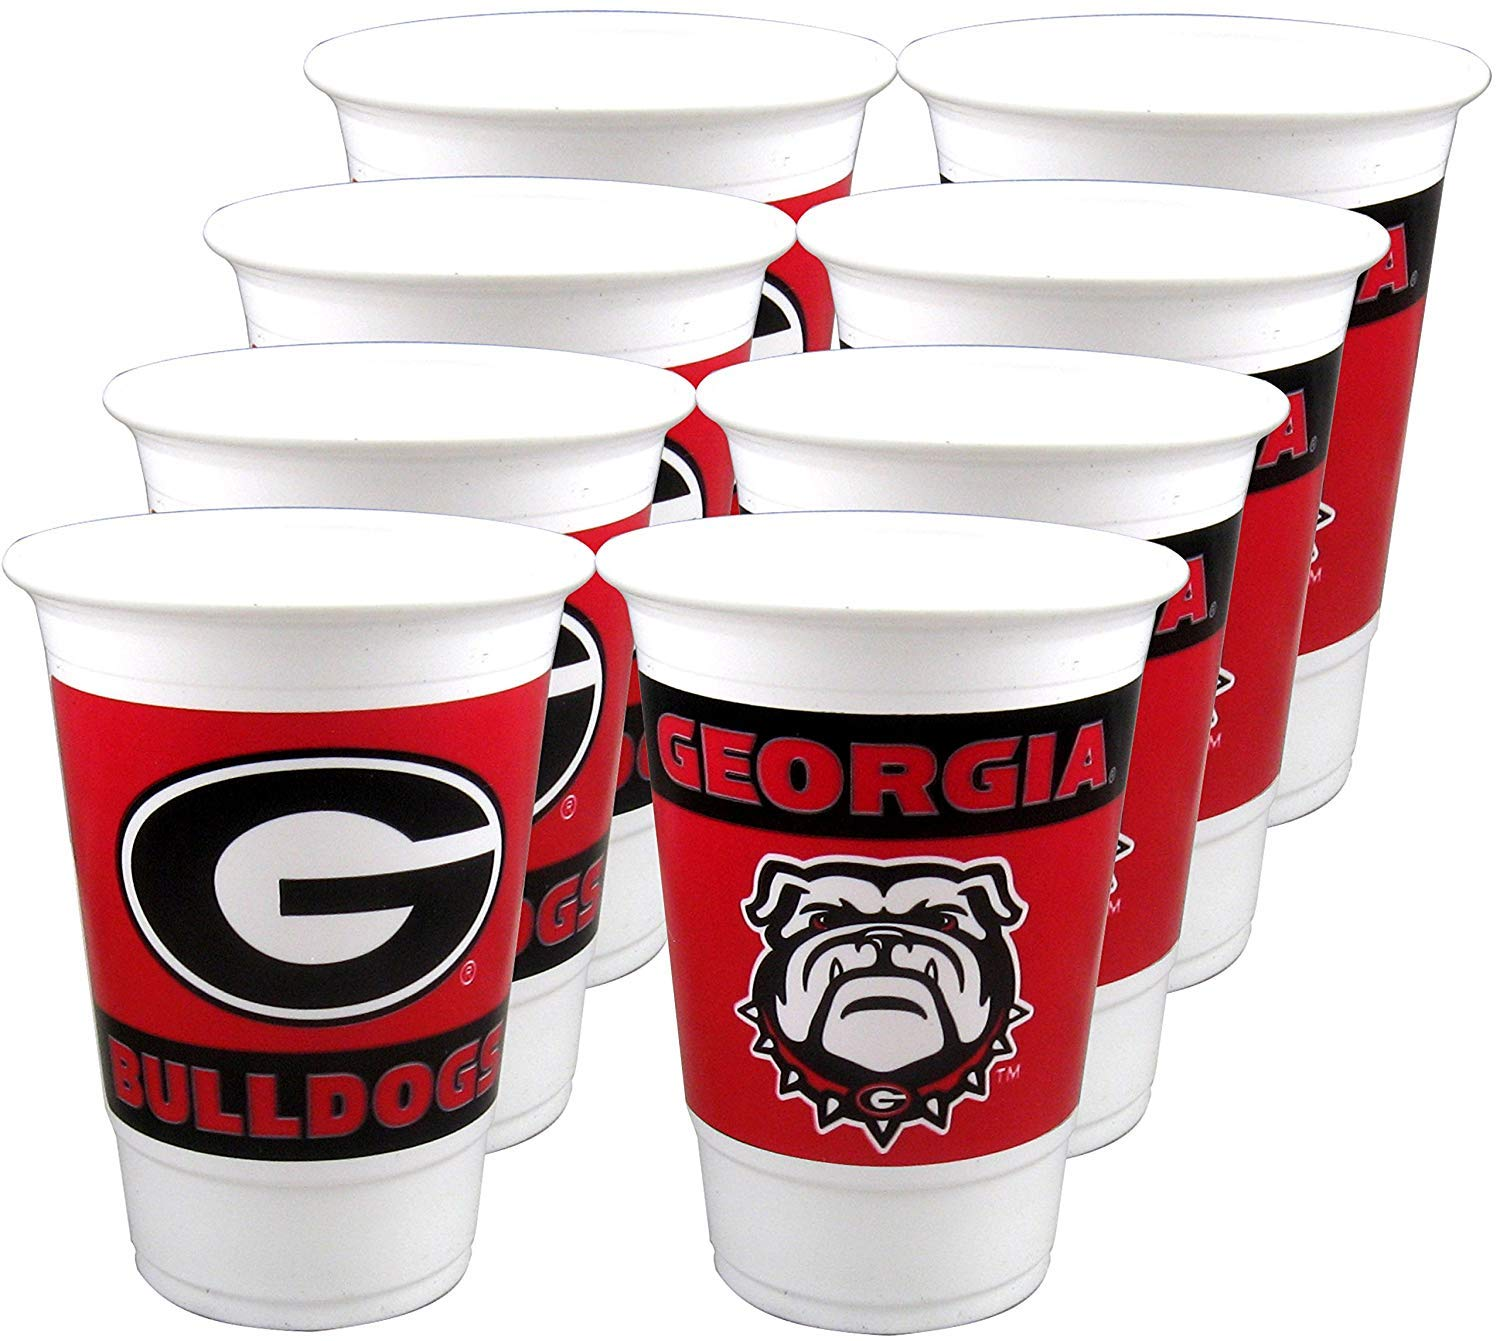 Georgia Bulldogs White, Black & Red Cups (Pack of 24-16 OZ Cups) by Party